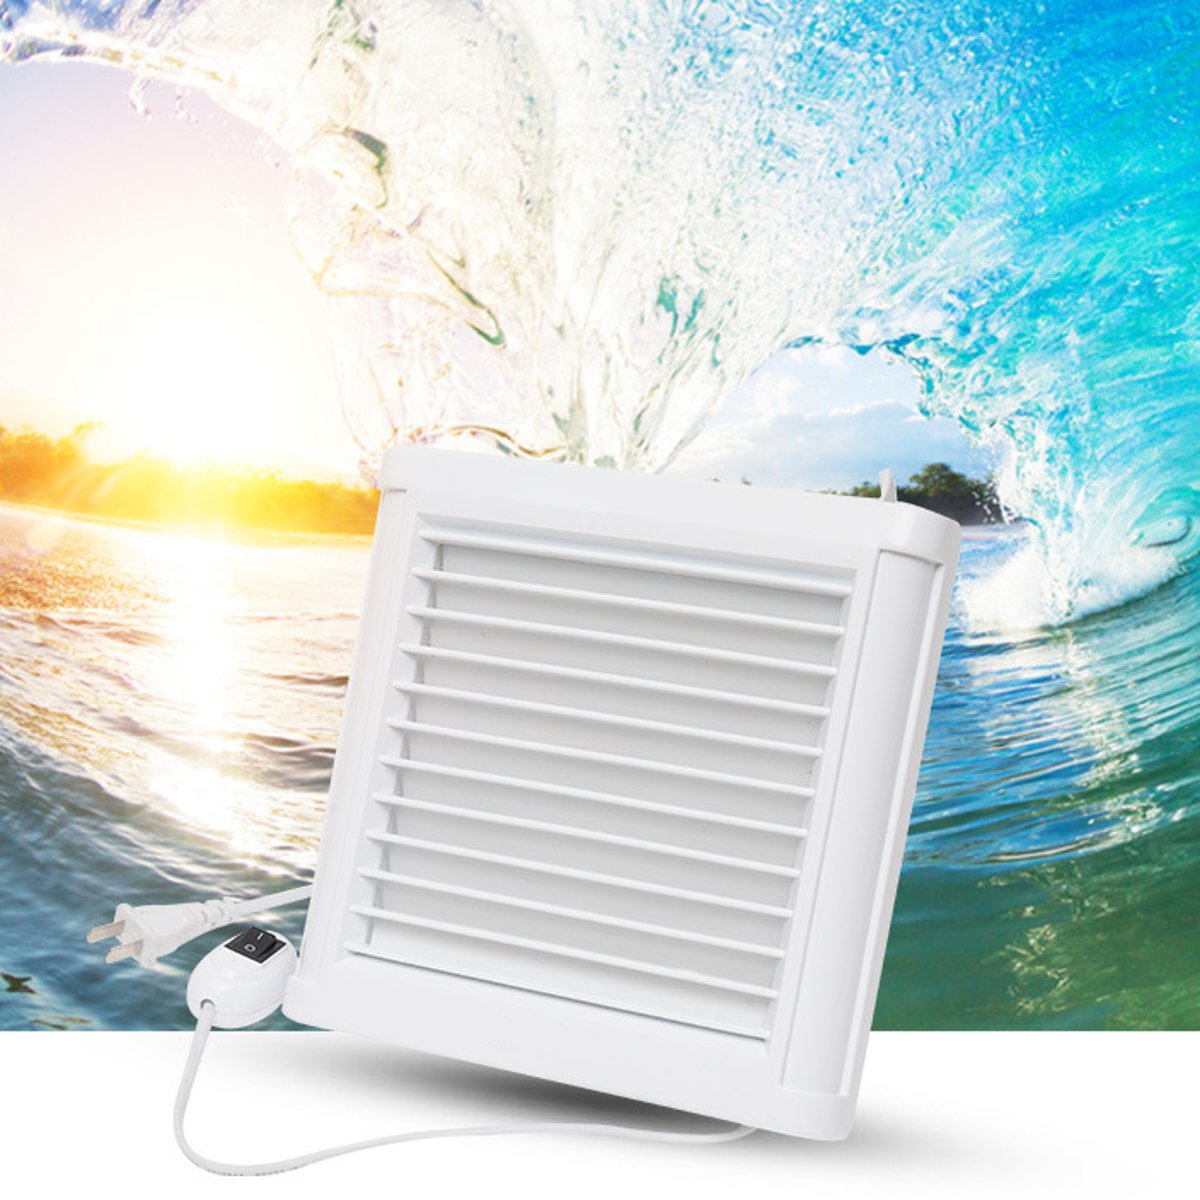 Waterproof Mute Bathroom Extractor Exhaust Fan Ventilating Strong Fan For Kitchen Toilet Window Ventilation Fans 4Inch 6 Inch